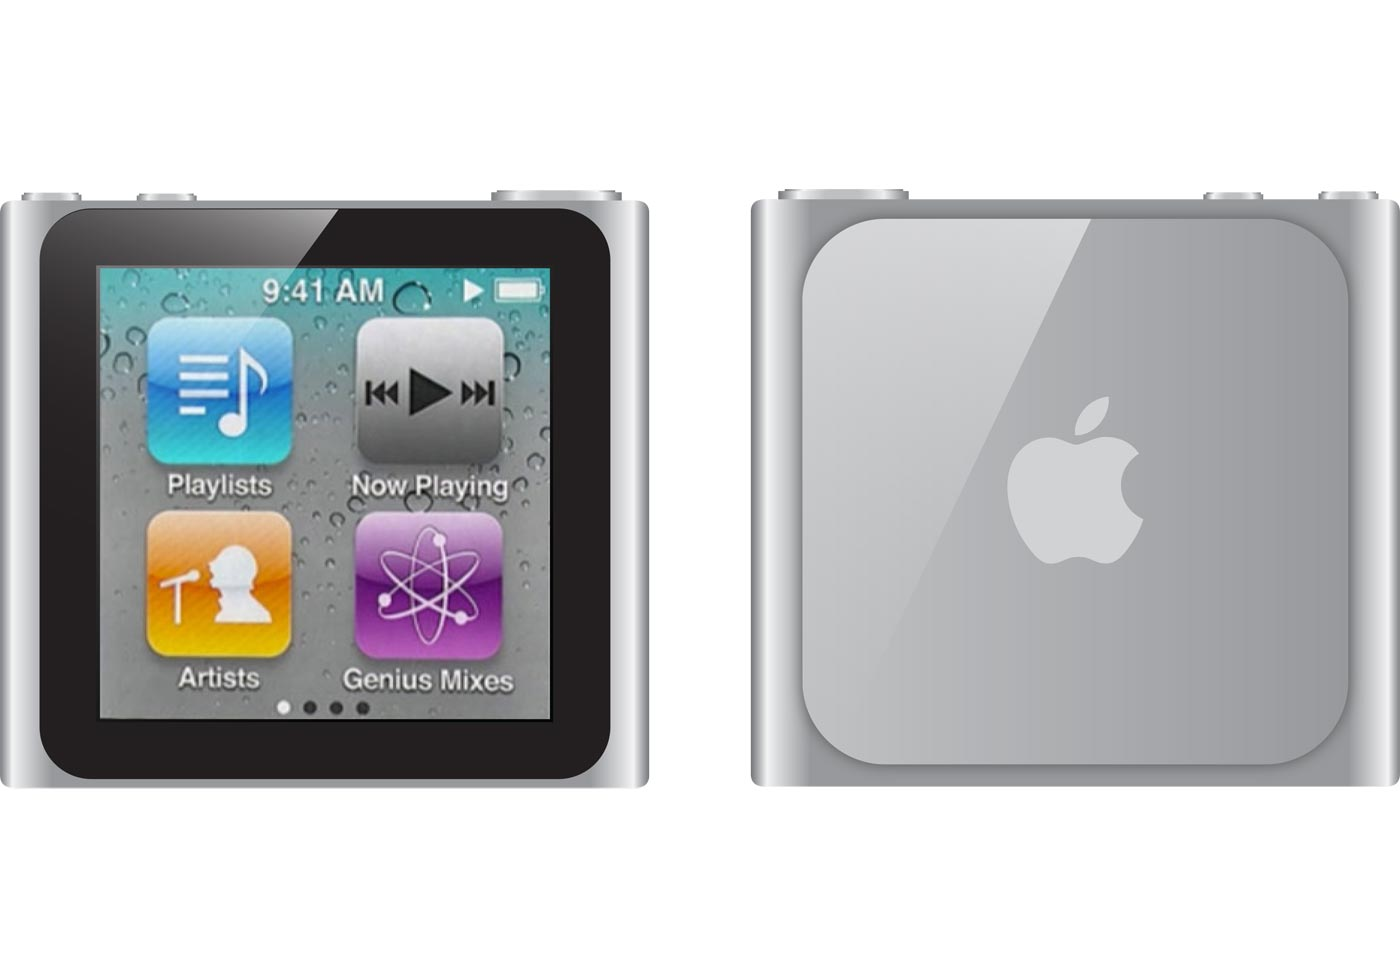 iPod nano Free Vector - Download Free Vector Art, Stock ...